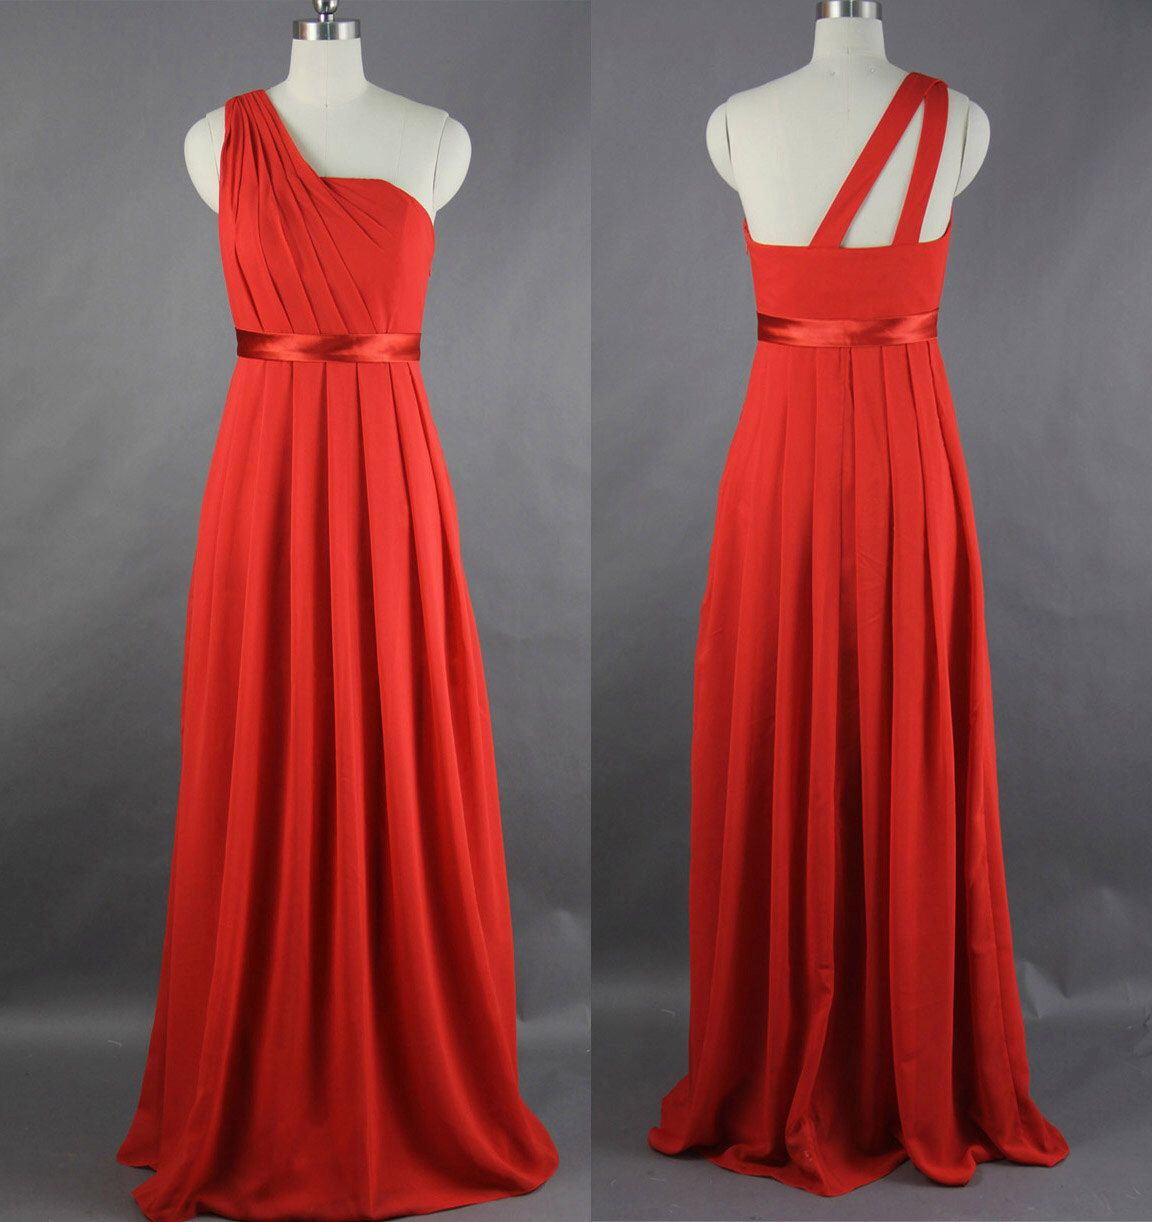 One shoulder bridesmaid dress 2014 a line one shoulder long one shoulder bridesmaid dress 2014 a line one shoulder long chiffon bridesmaid dress 2014 ombrellifo Gallery